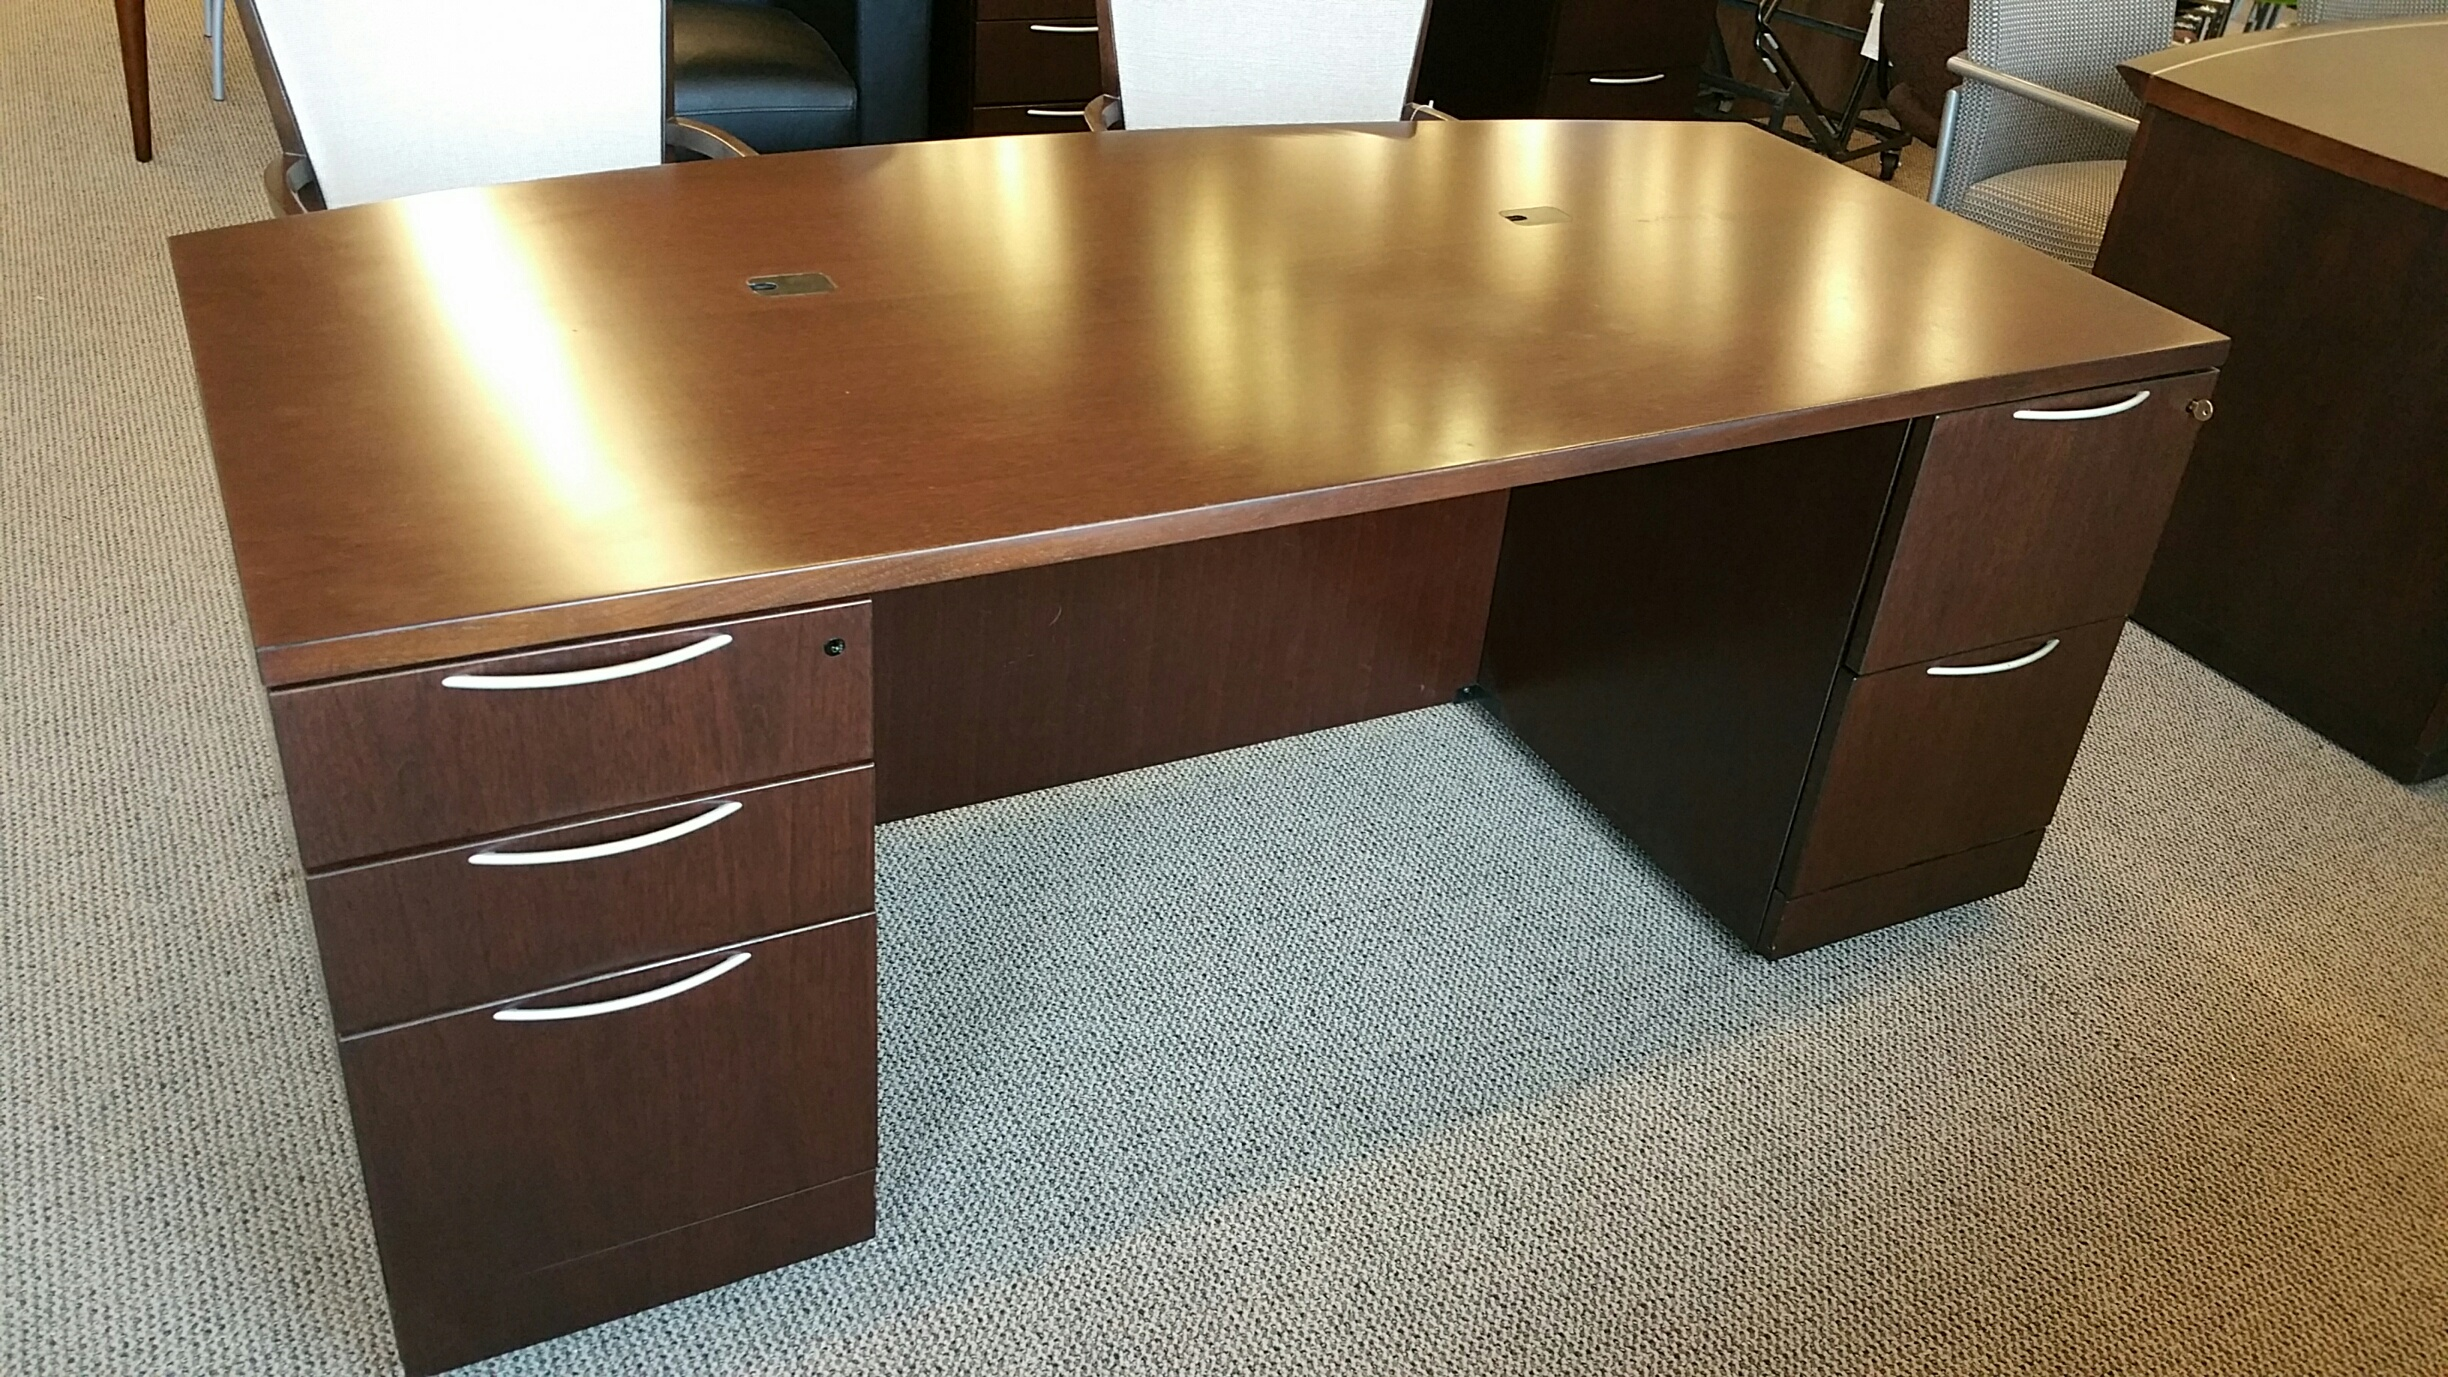 steelcase reply chair review folding jute pre owned knoll reff desk and credenza set - crown office furniture | tulsa oklahoma